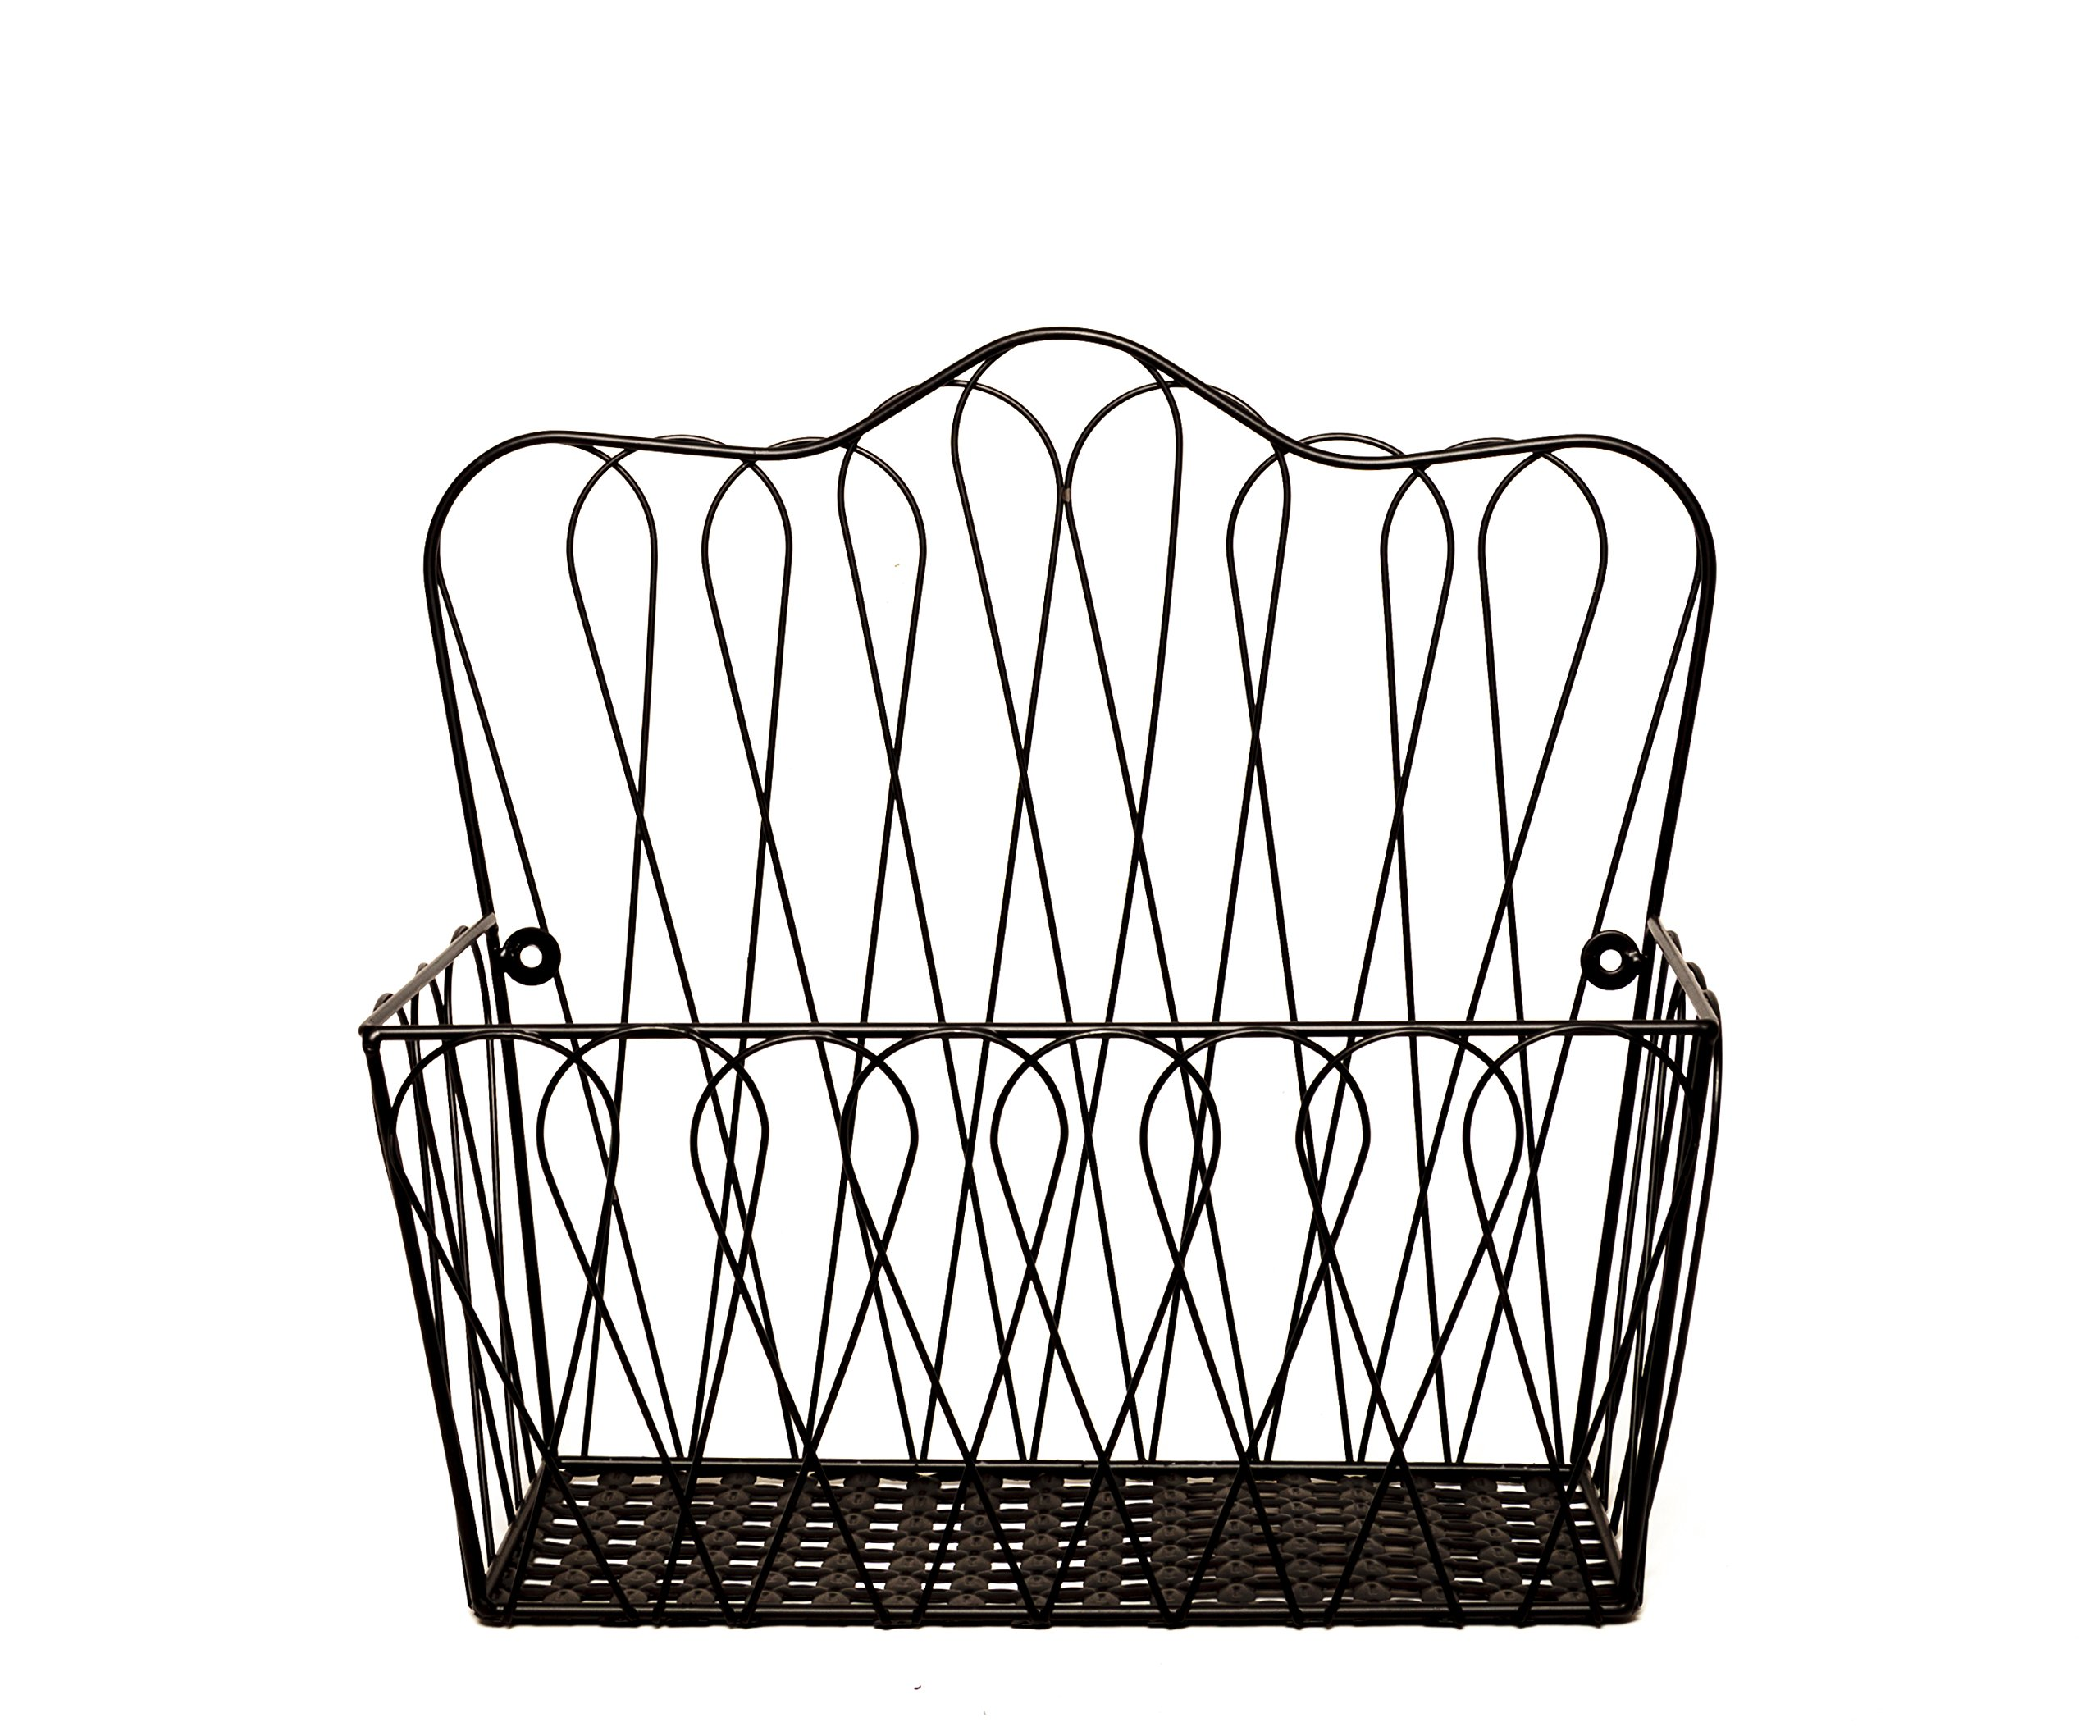 JMiles UH-HB236 Wall Mount Wire Basket for Magazines, Wire Loop design - Wall Mounted or Freestanding Countertop Storage Basket for Paperwork, Fruits and Veggies, and more